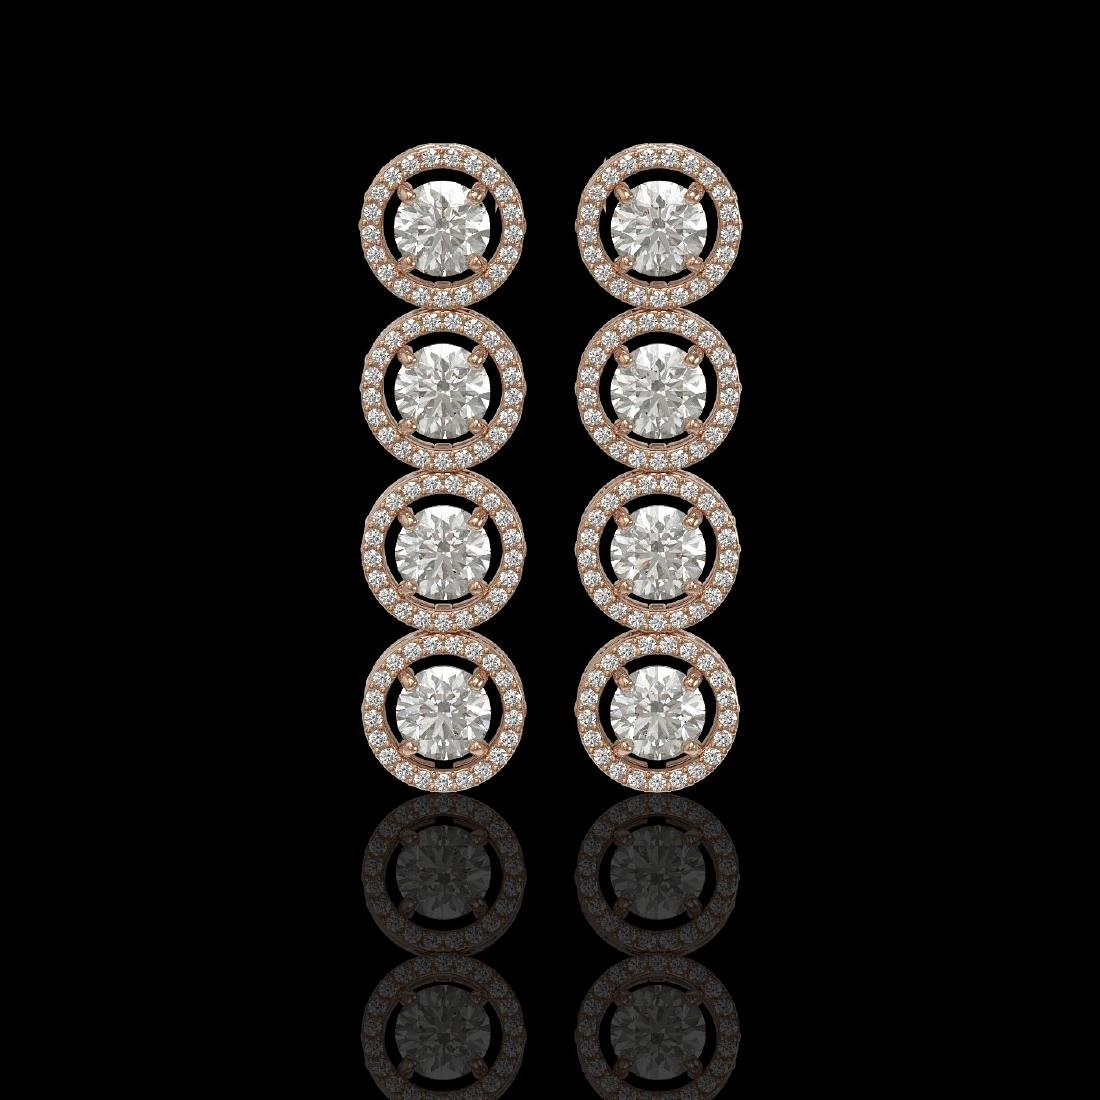 5.36 CTW Diamond Designer Earrings 18K Rose Gold